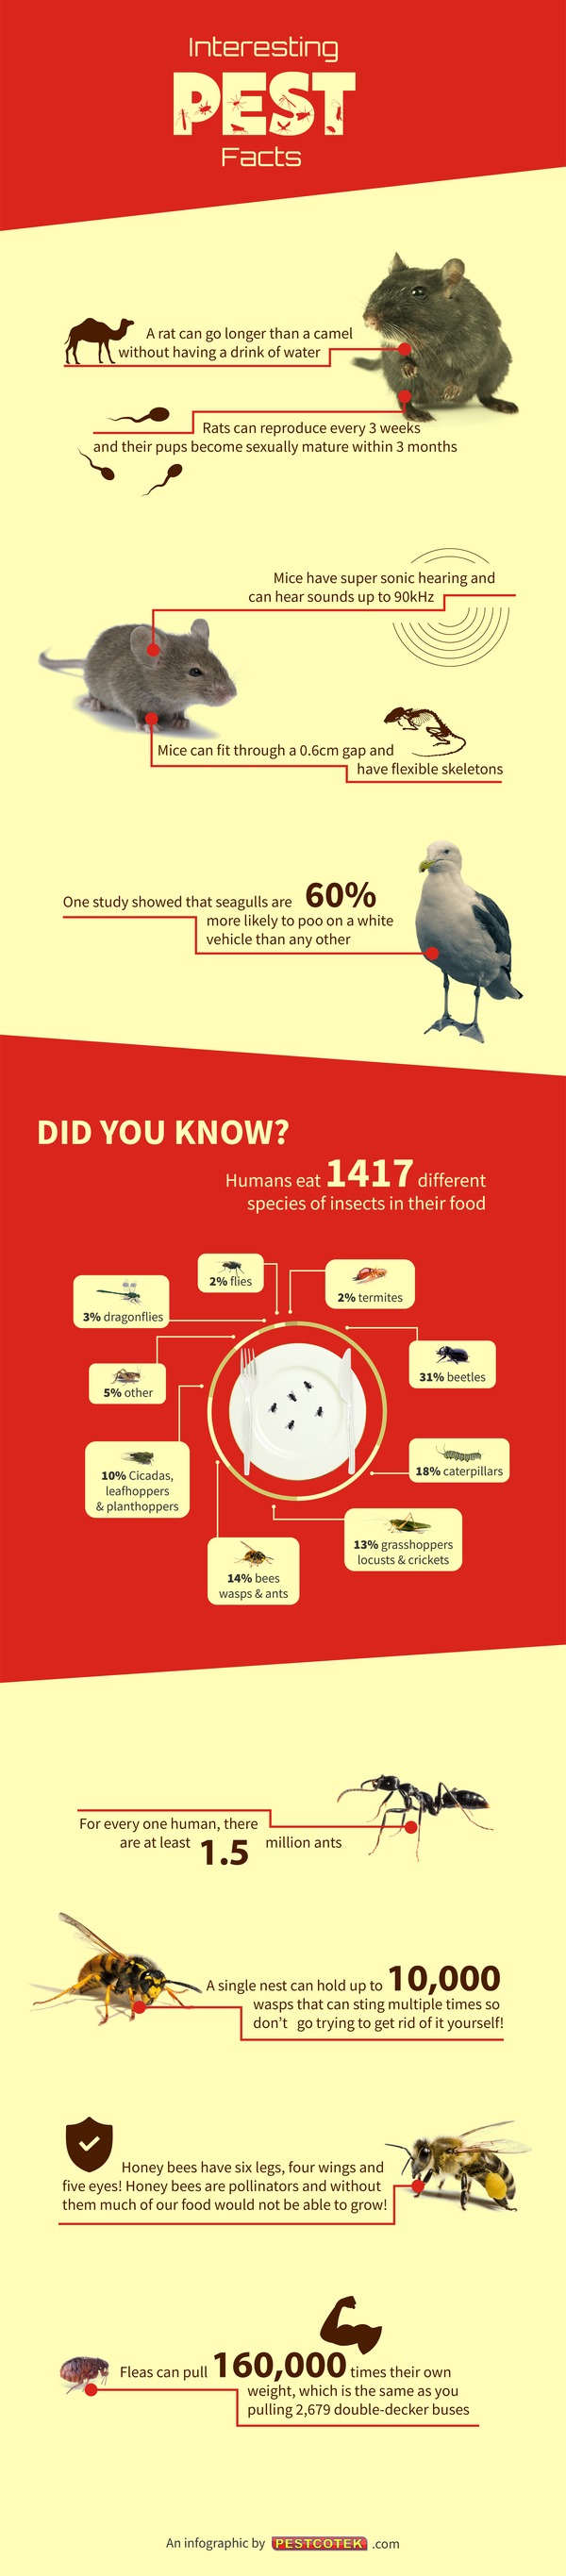 Interesting Pest Facts